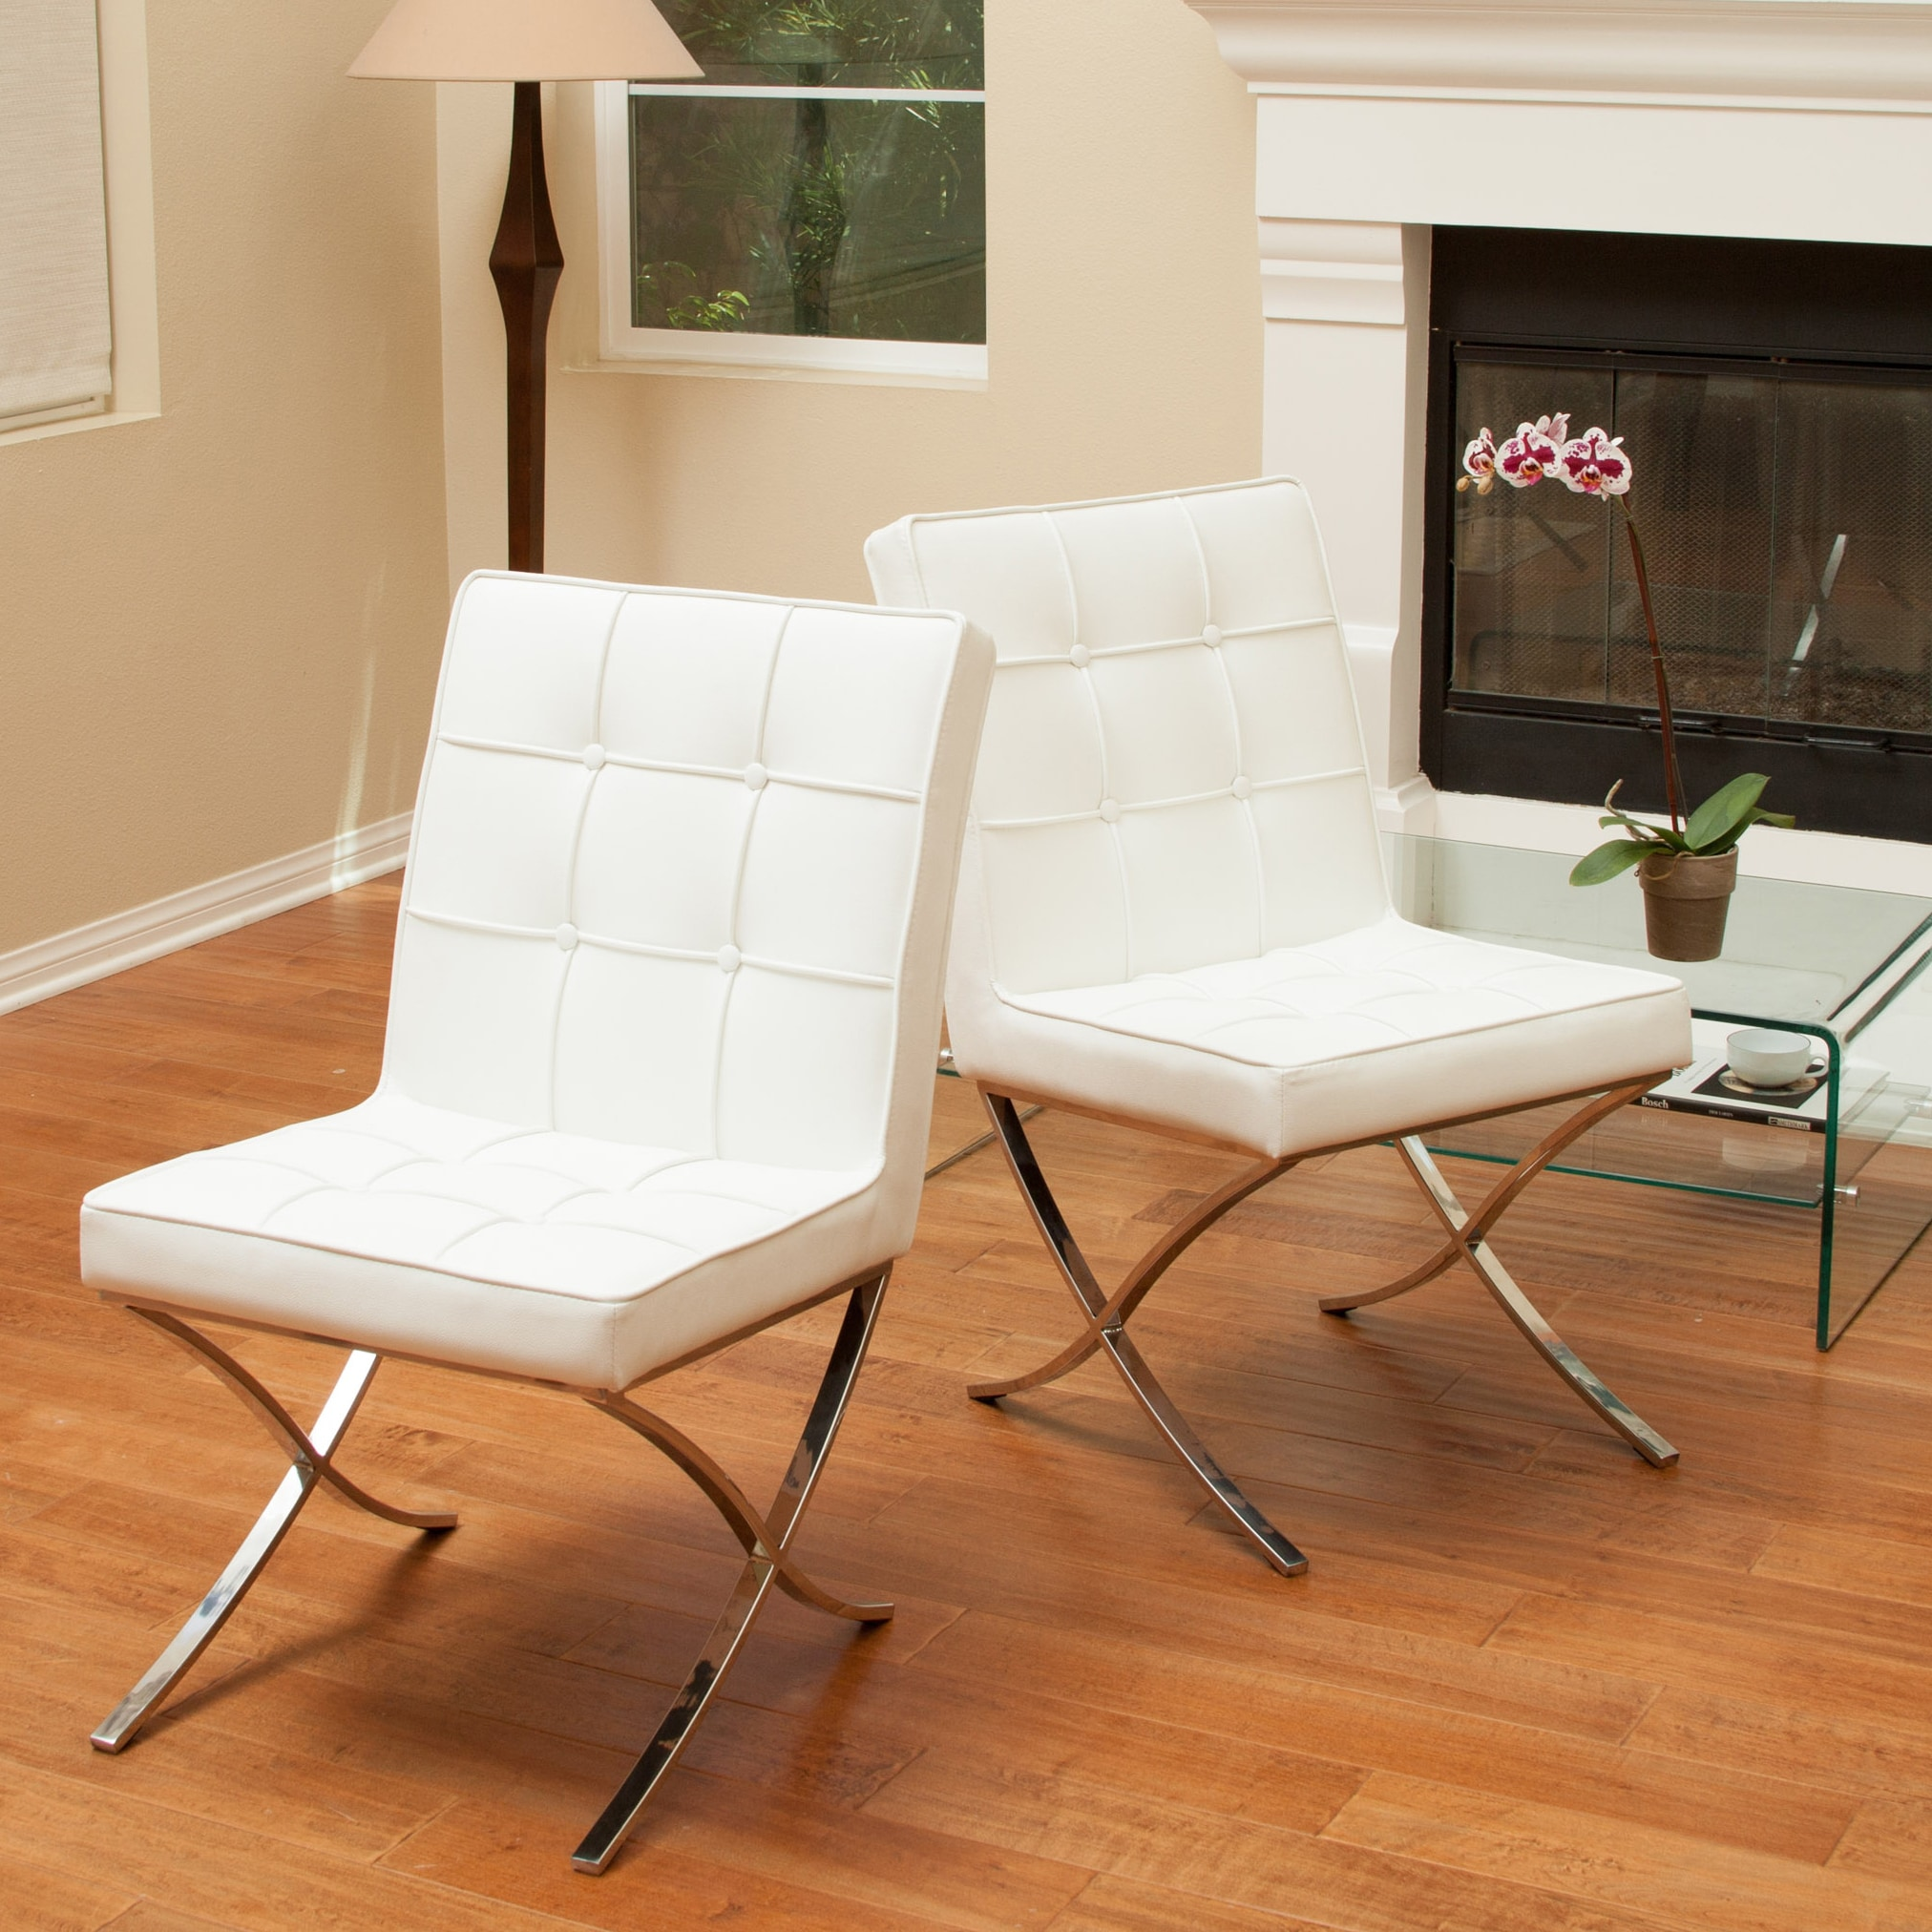 Overstock Dining Chairs: Christopher Knight Home Milania White Leather Dining